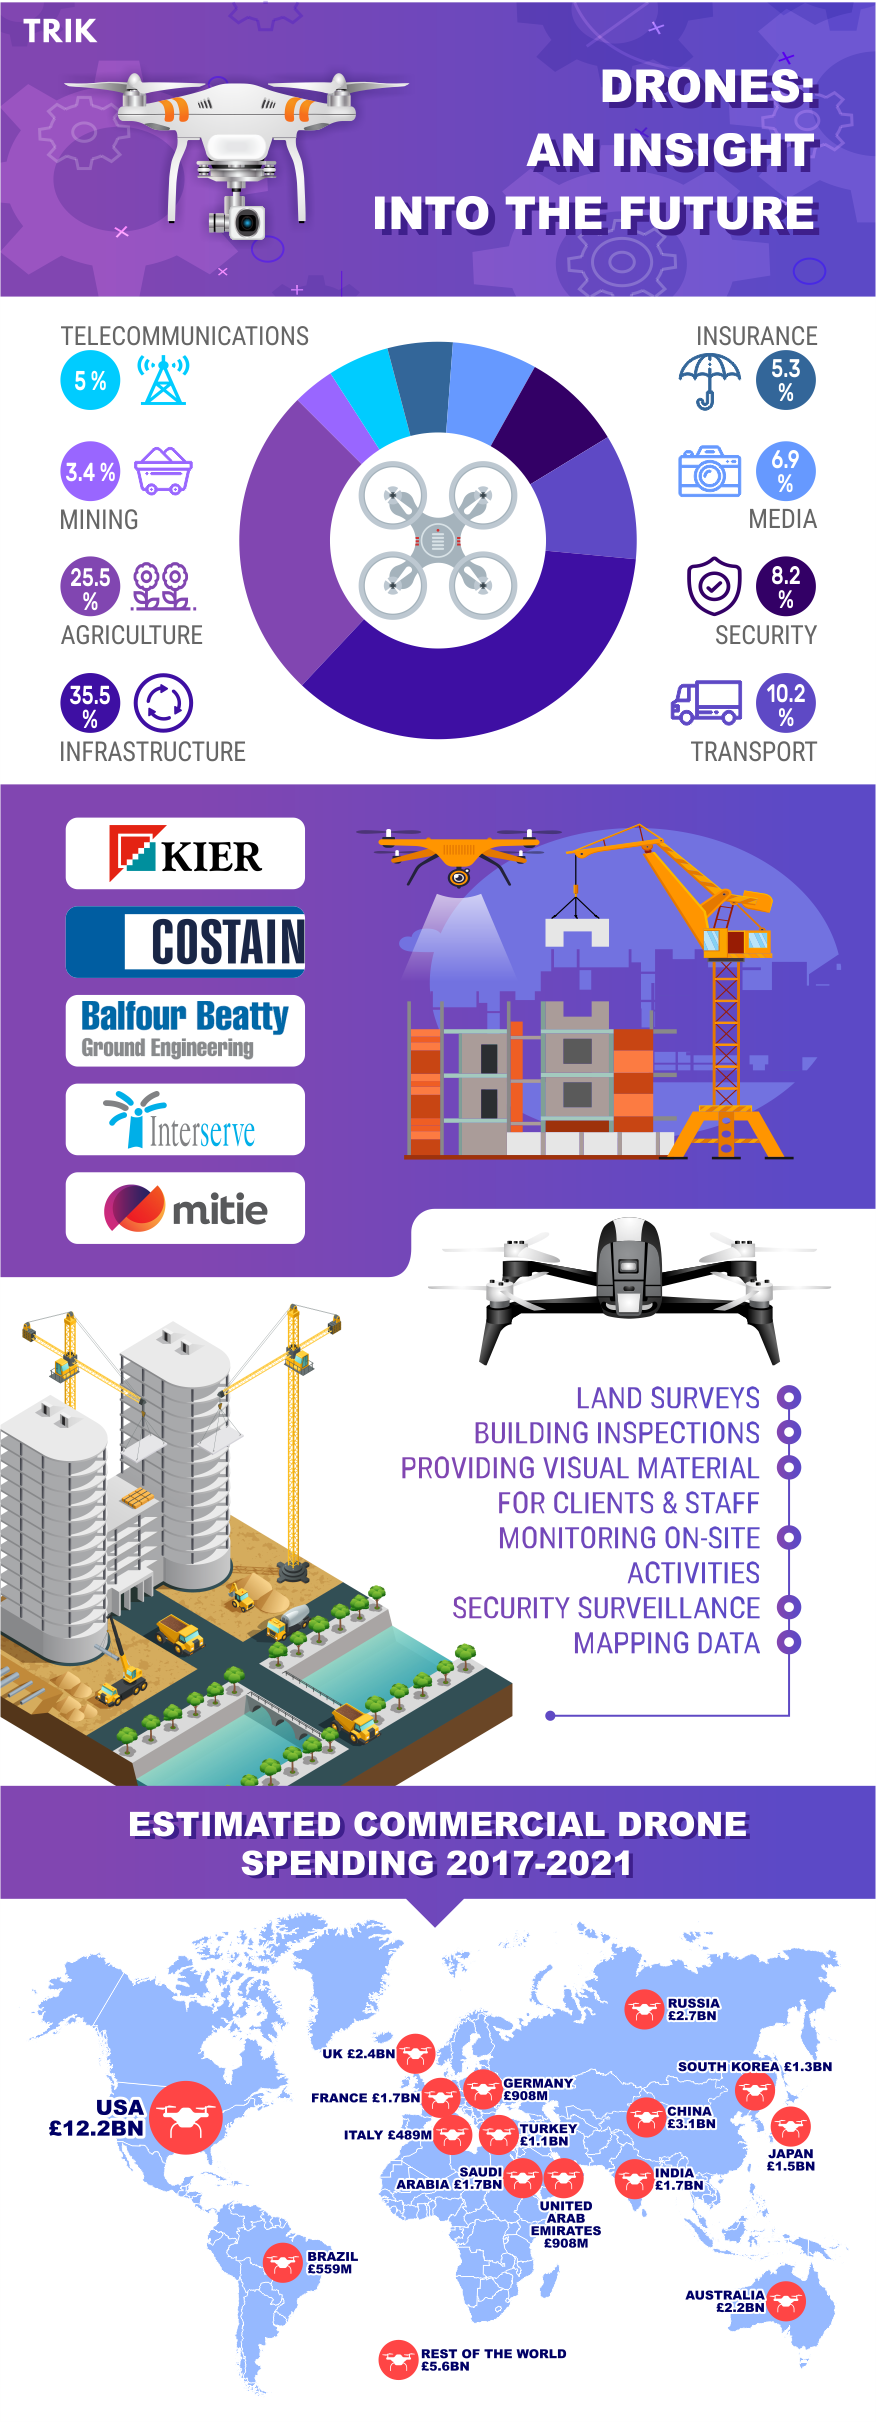 Drones: An Insight Into The Future